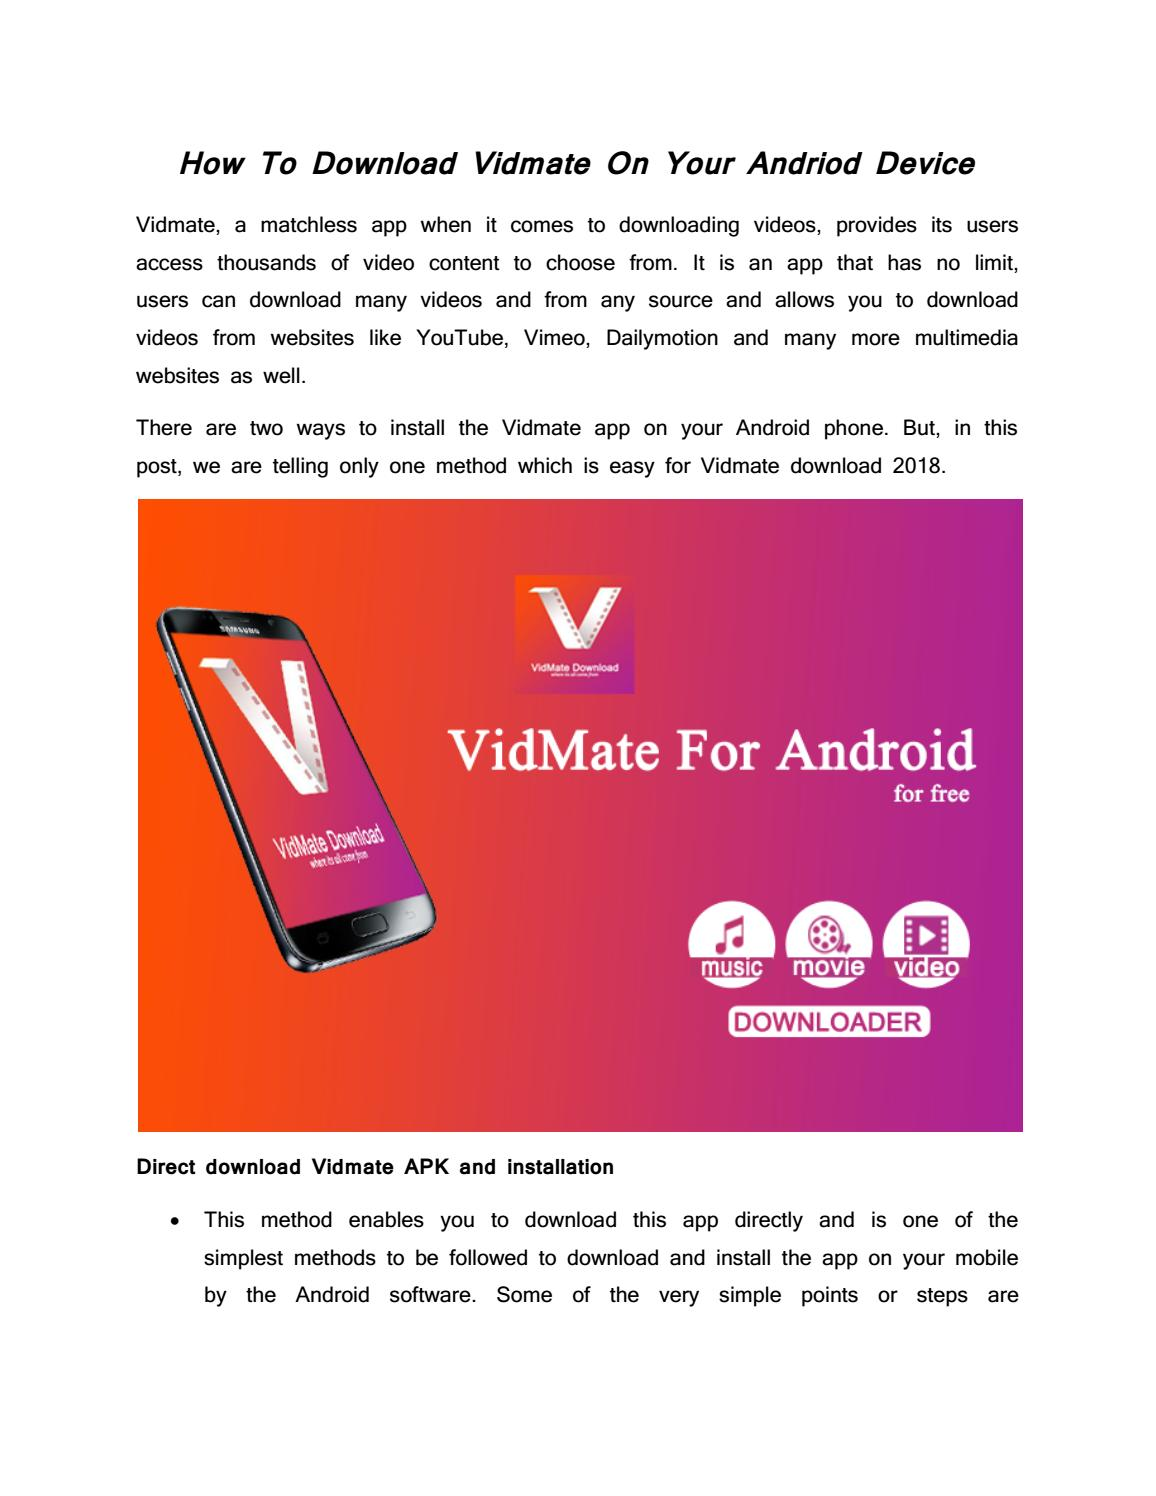 How To Download Vidmate On Your Andriod Device By Vidmateonline Issuu